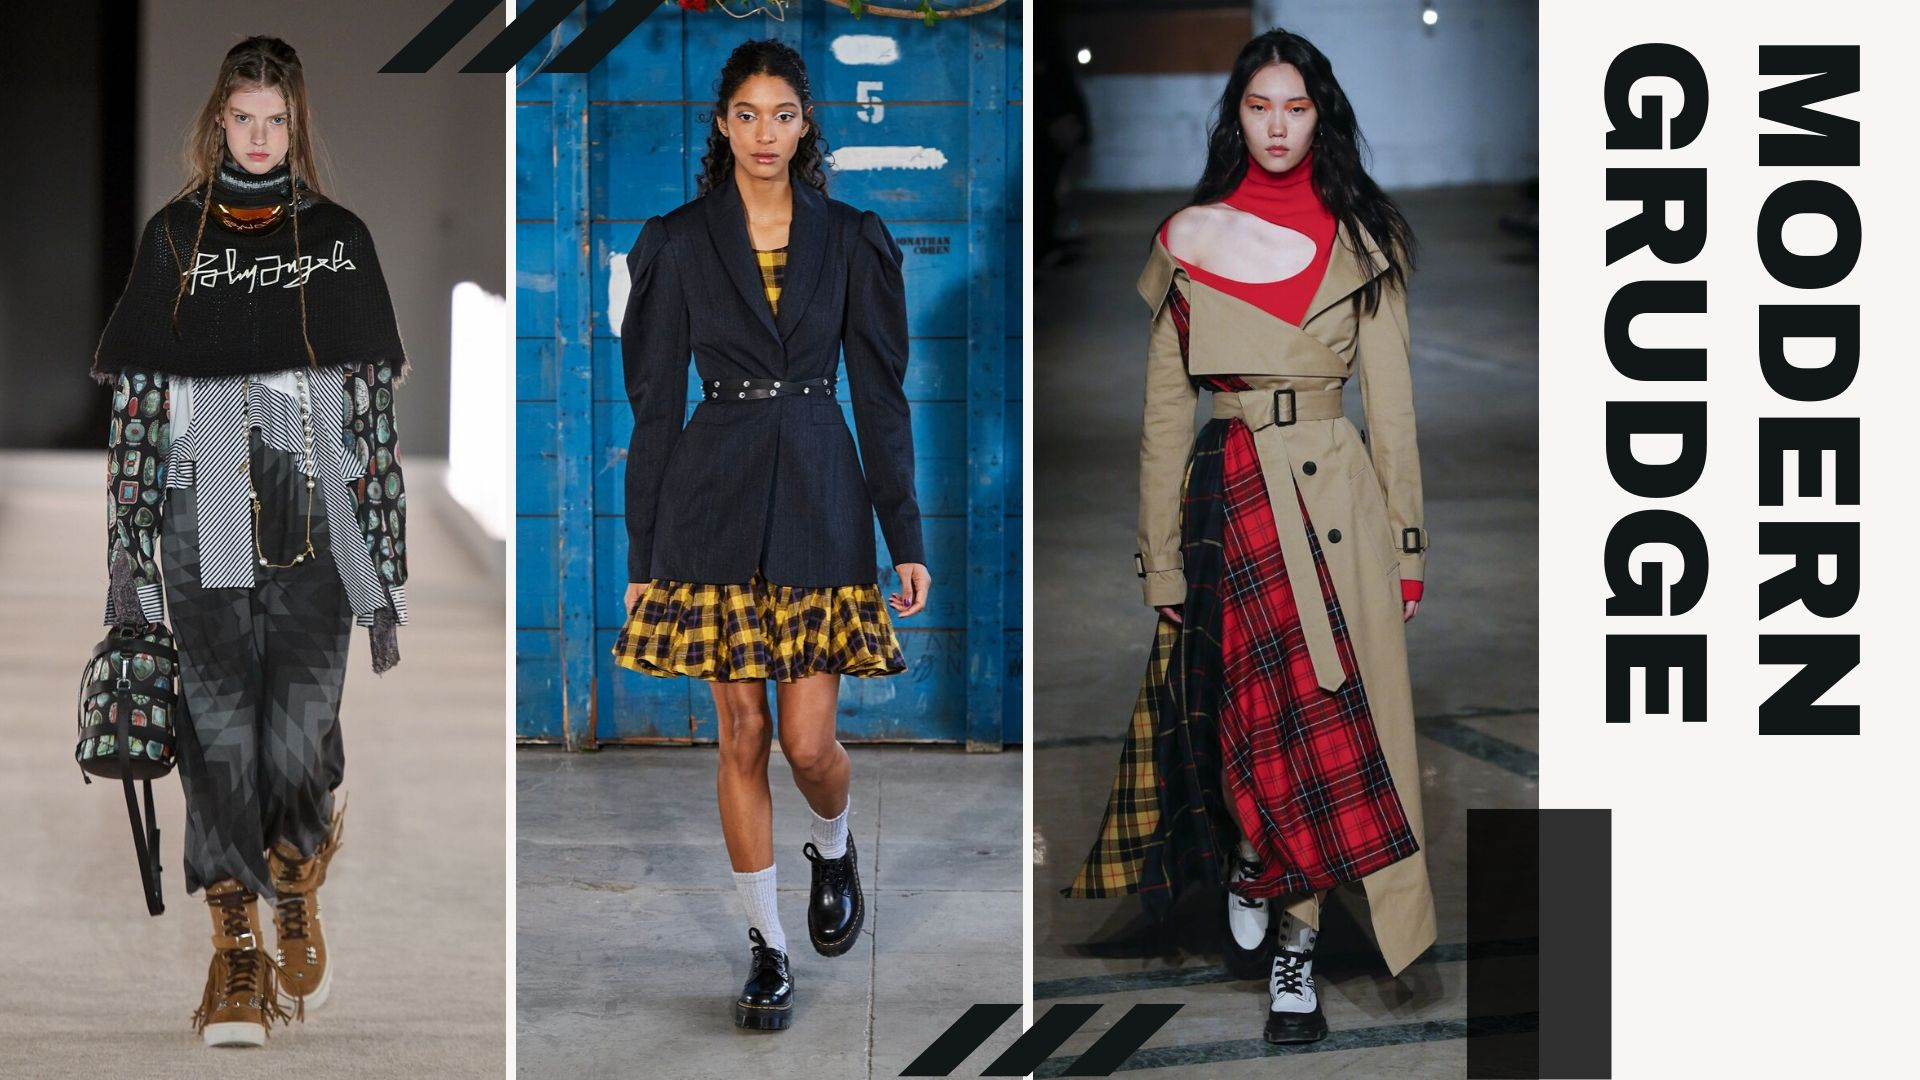 Top 5 trends from New York Fashion Week Fall/Winter 2020 - Modern Grudge